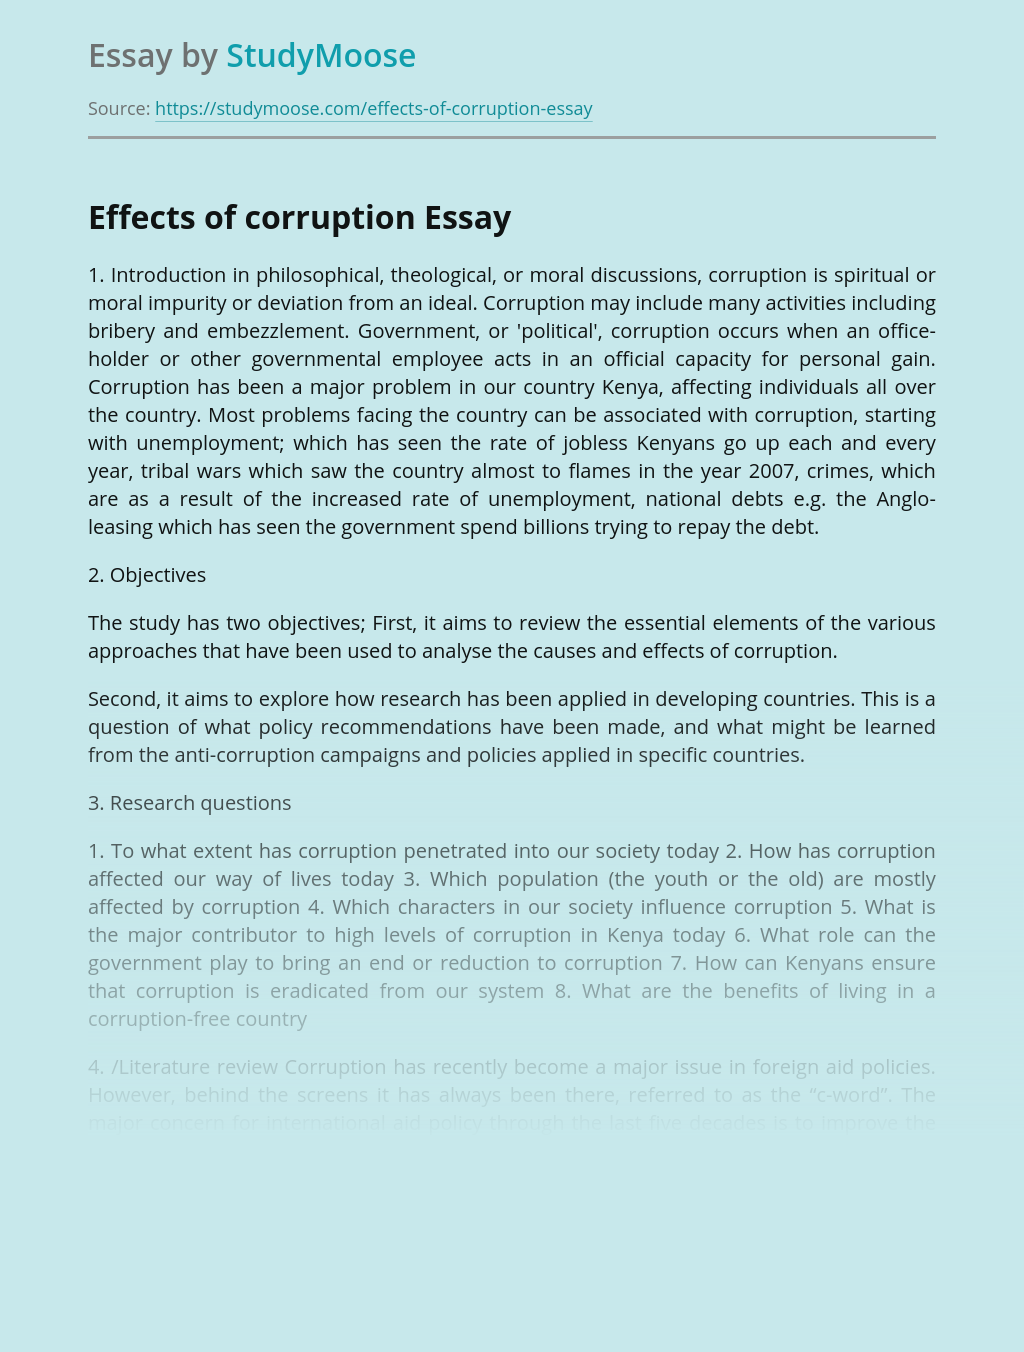 Effects of corruption